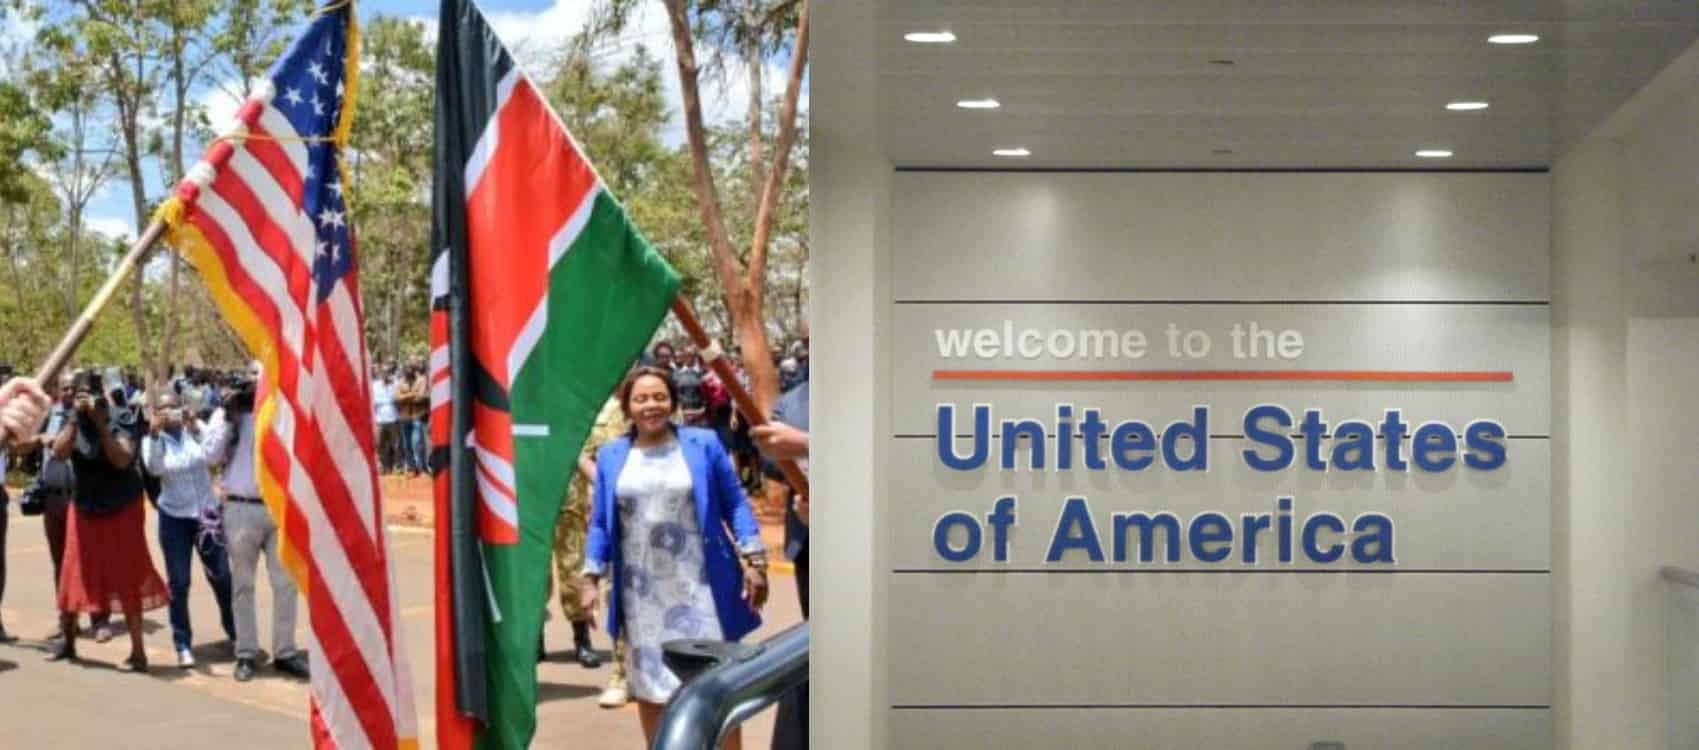 Us Embassy Kenya Visa Application Form Ds 160, Usa Visa Requirements For Kenyan Citizens, Us Embassy Kenya Visa Application Form Ds 160